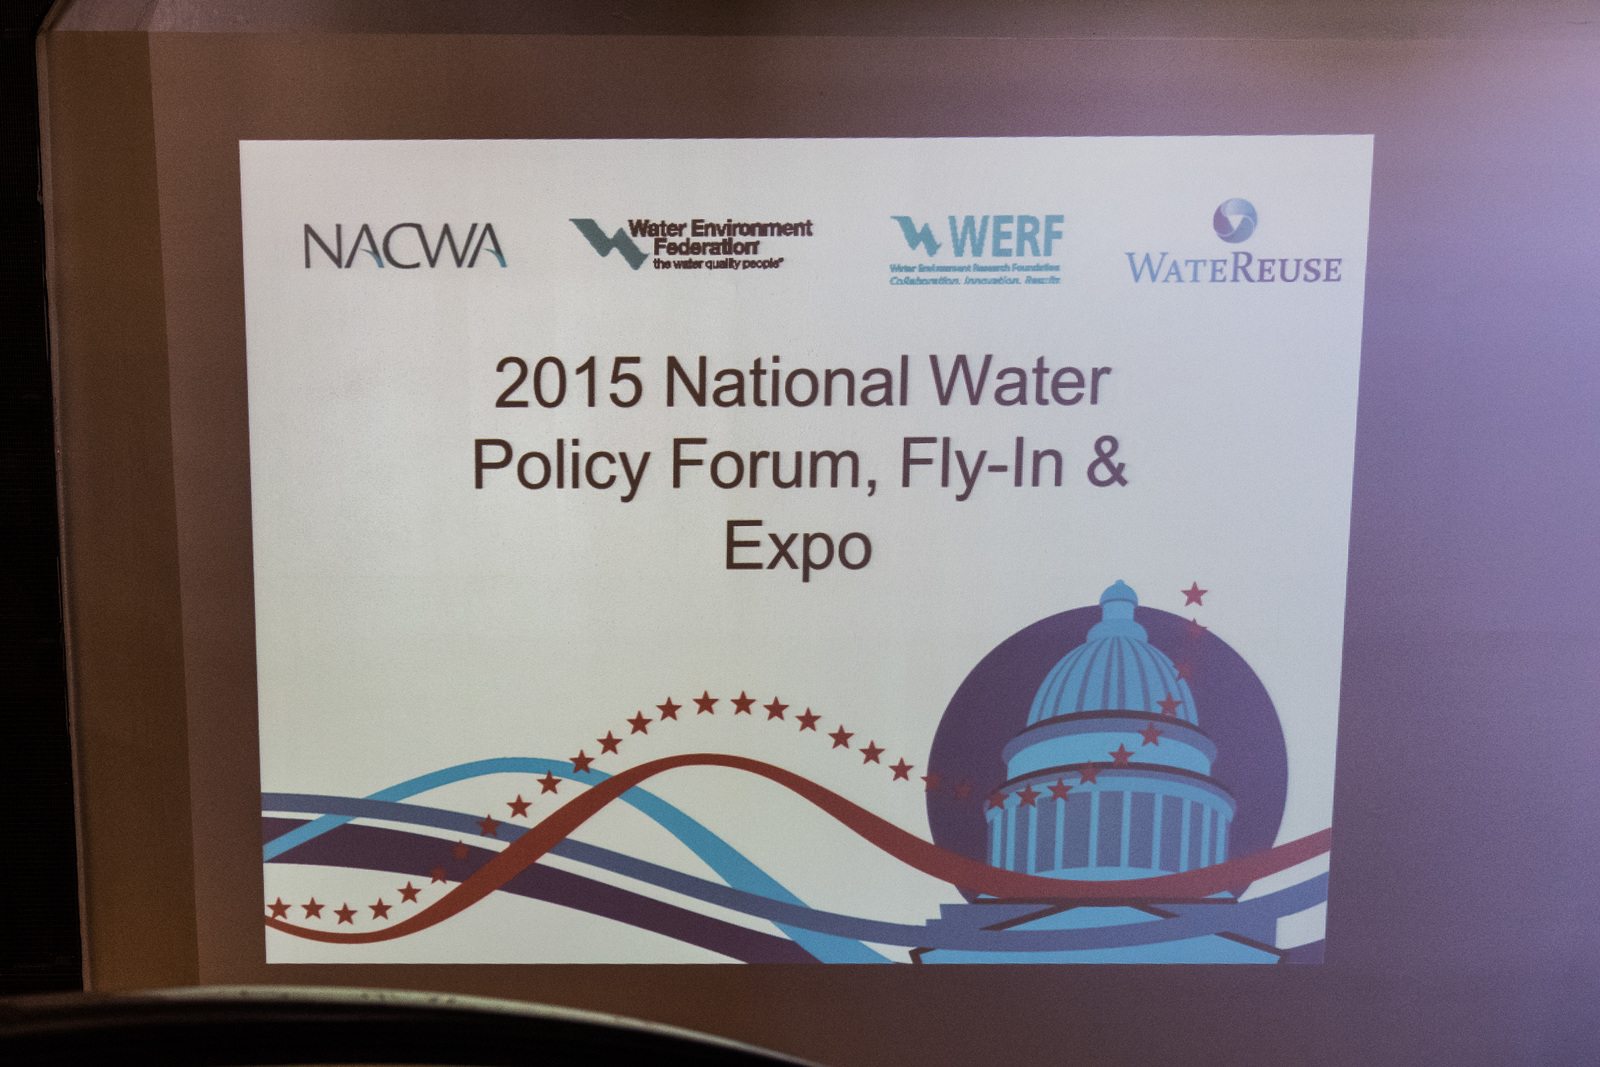 Office of the Administrator - National Water Policy Forum, Fly-In, and Expo [412-APD-1293-2015-04-13_NAQUA_001.jpg]